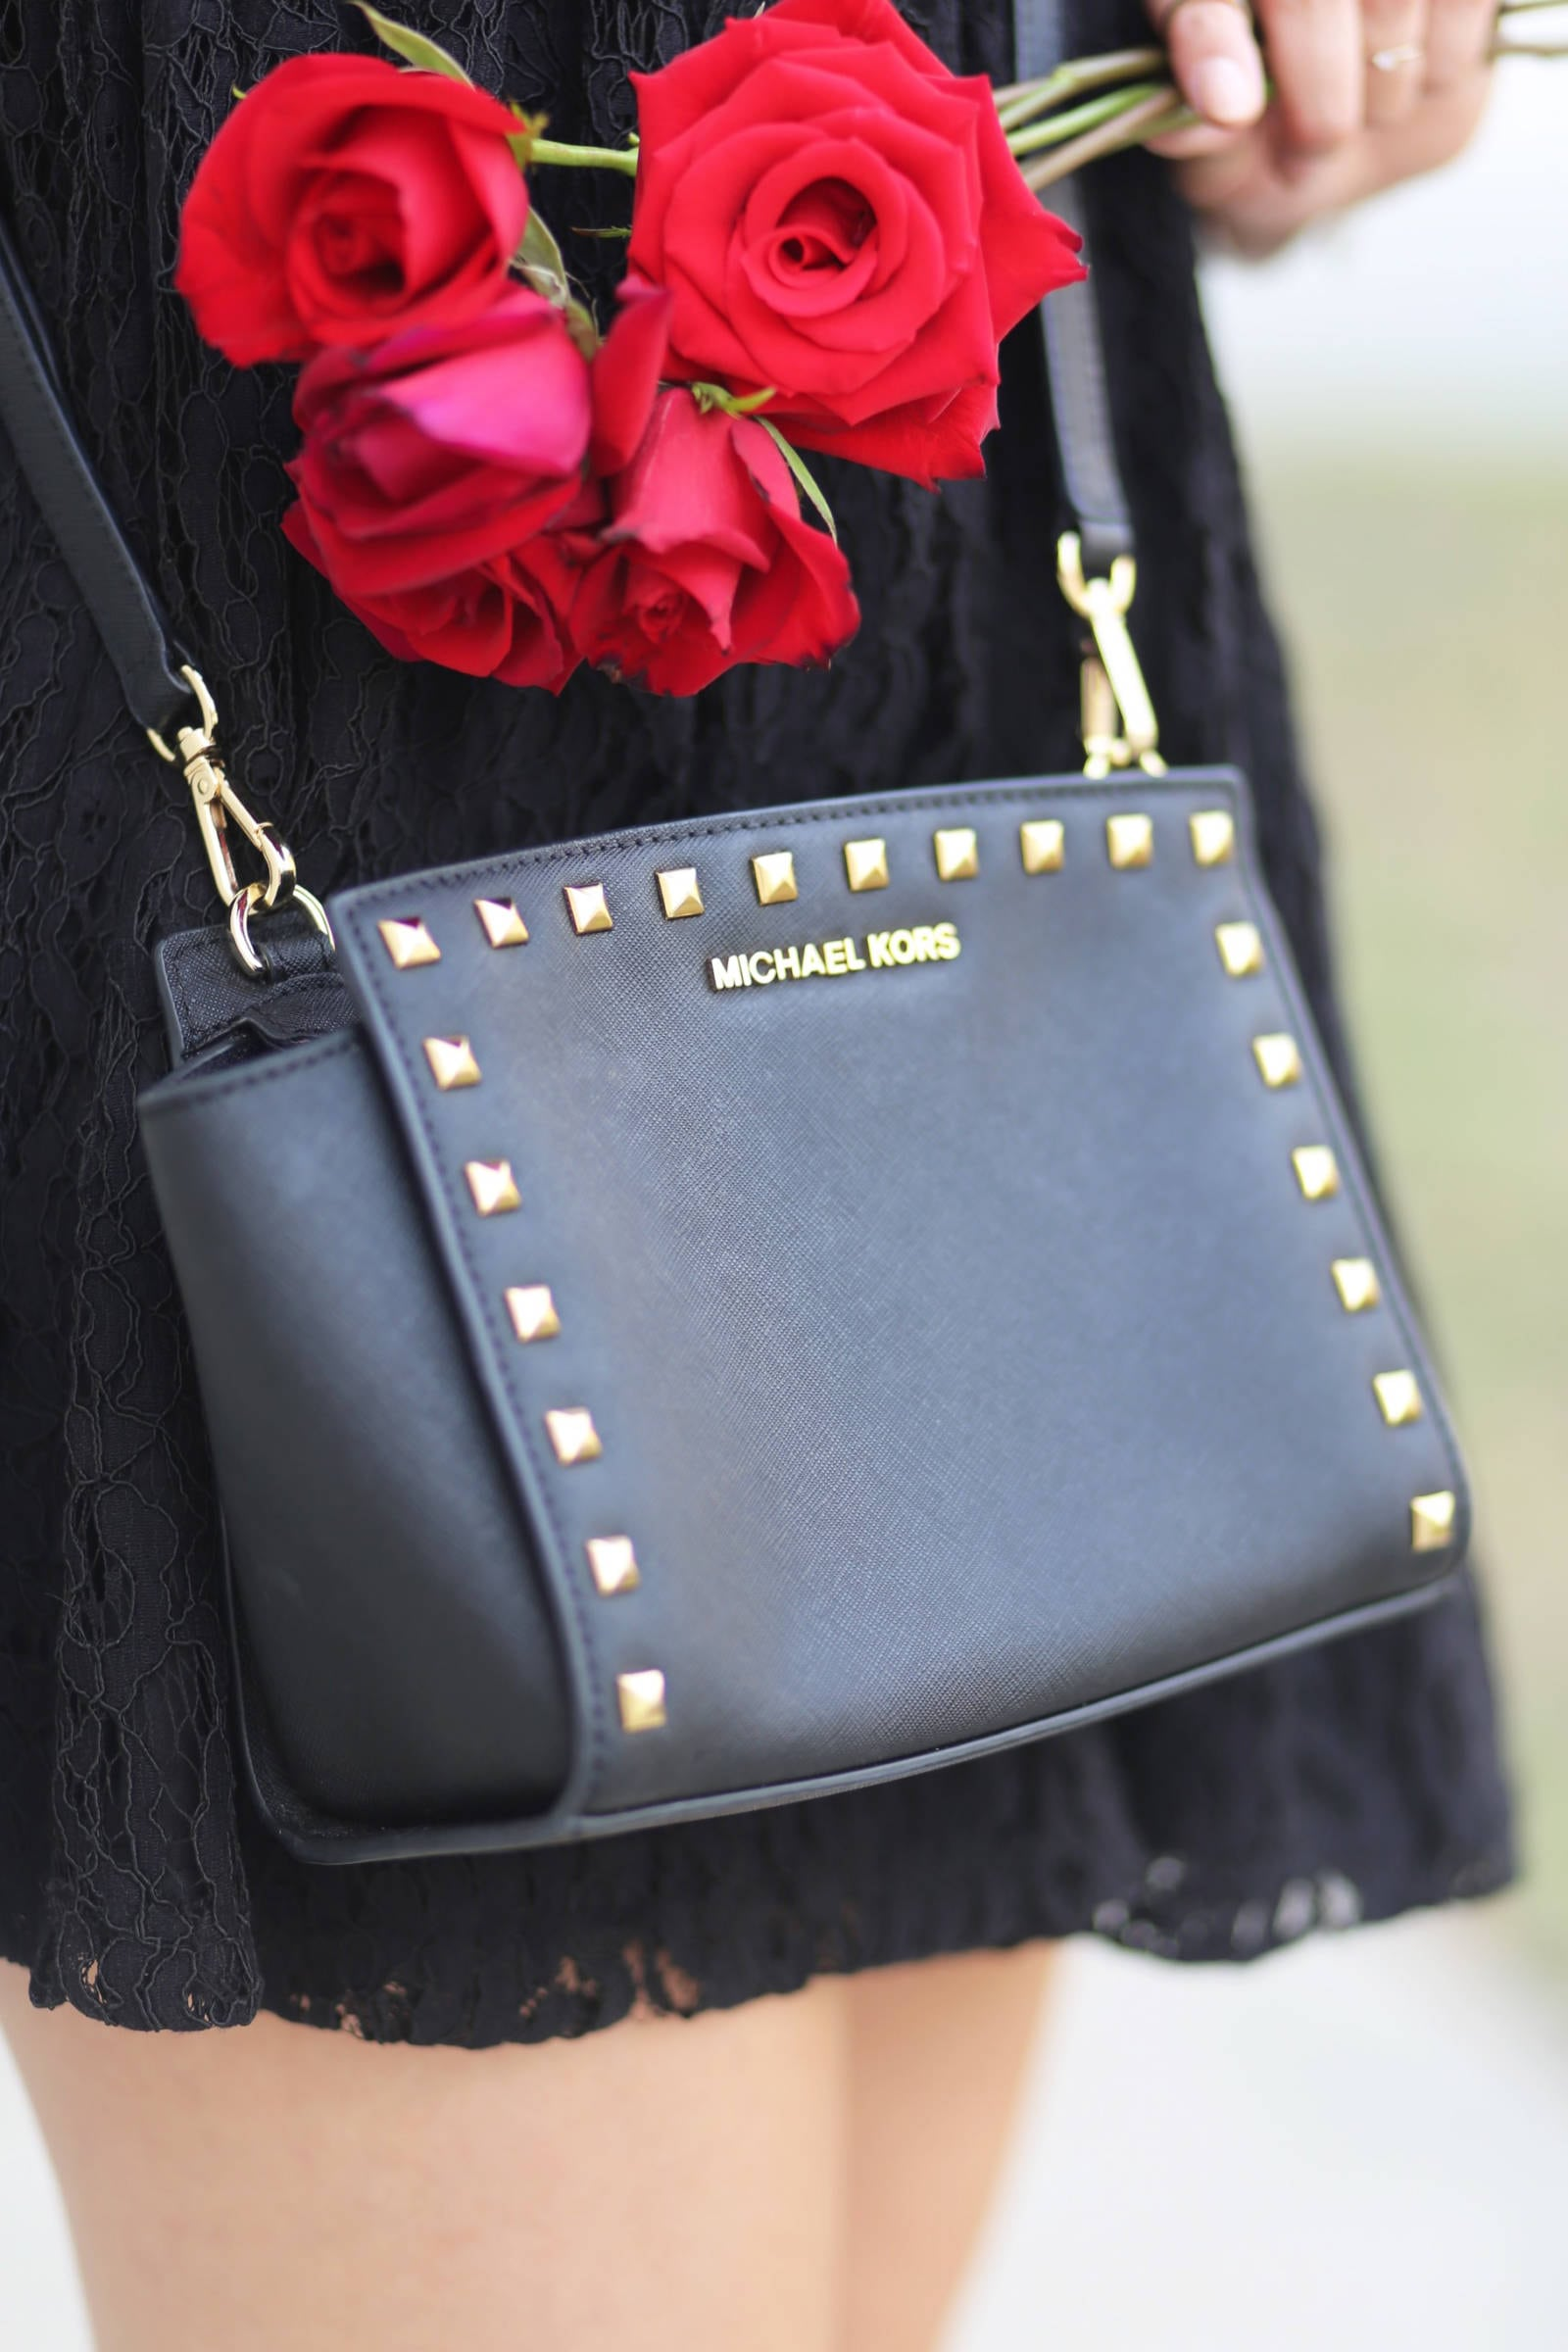 Fashion blogger Mash Elle styles the MICHAEL Michael Kors Black Medium Selma Studded Messenger Bag with a black lace dress